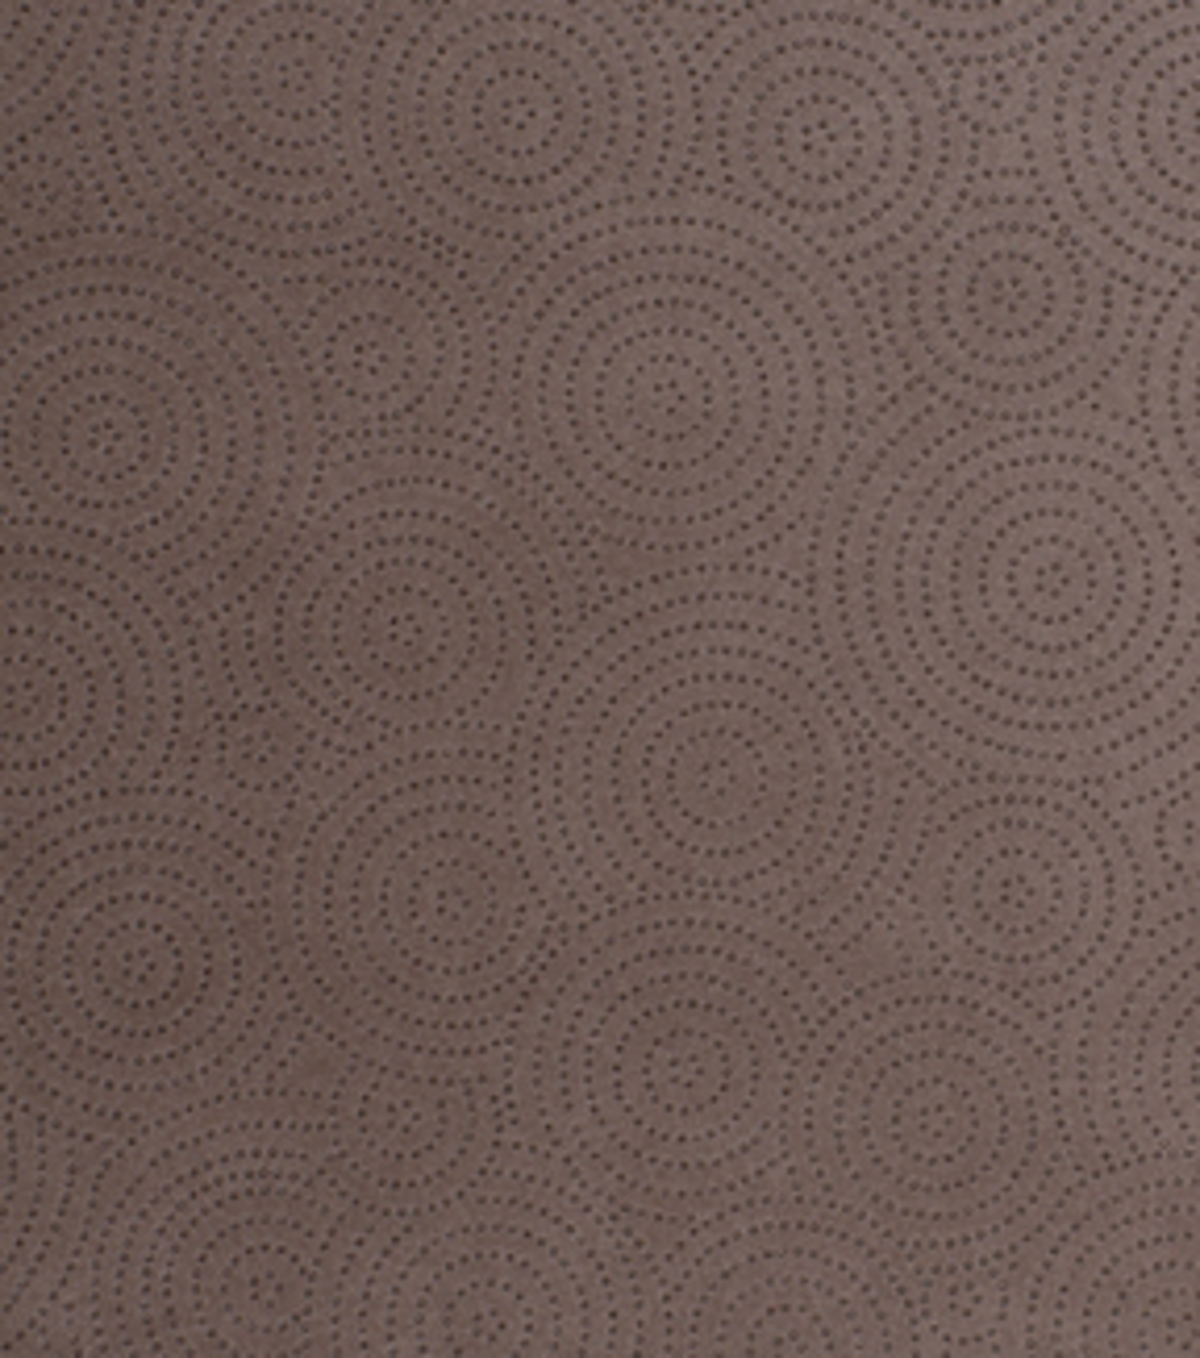 Home Decor 8\u0022x8\u0022 Fabric Swatch-Sta-Kleen Vinyl Cladius Umber